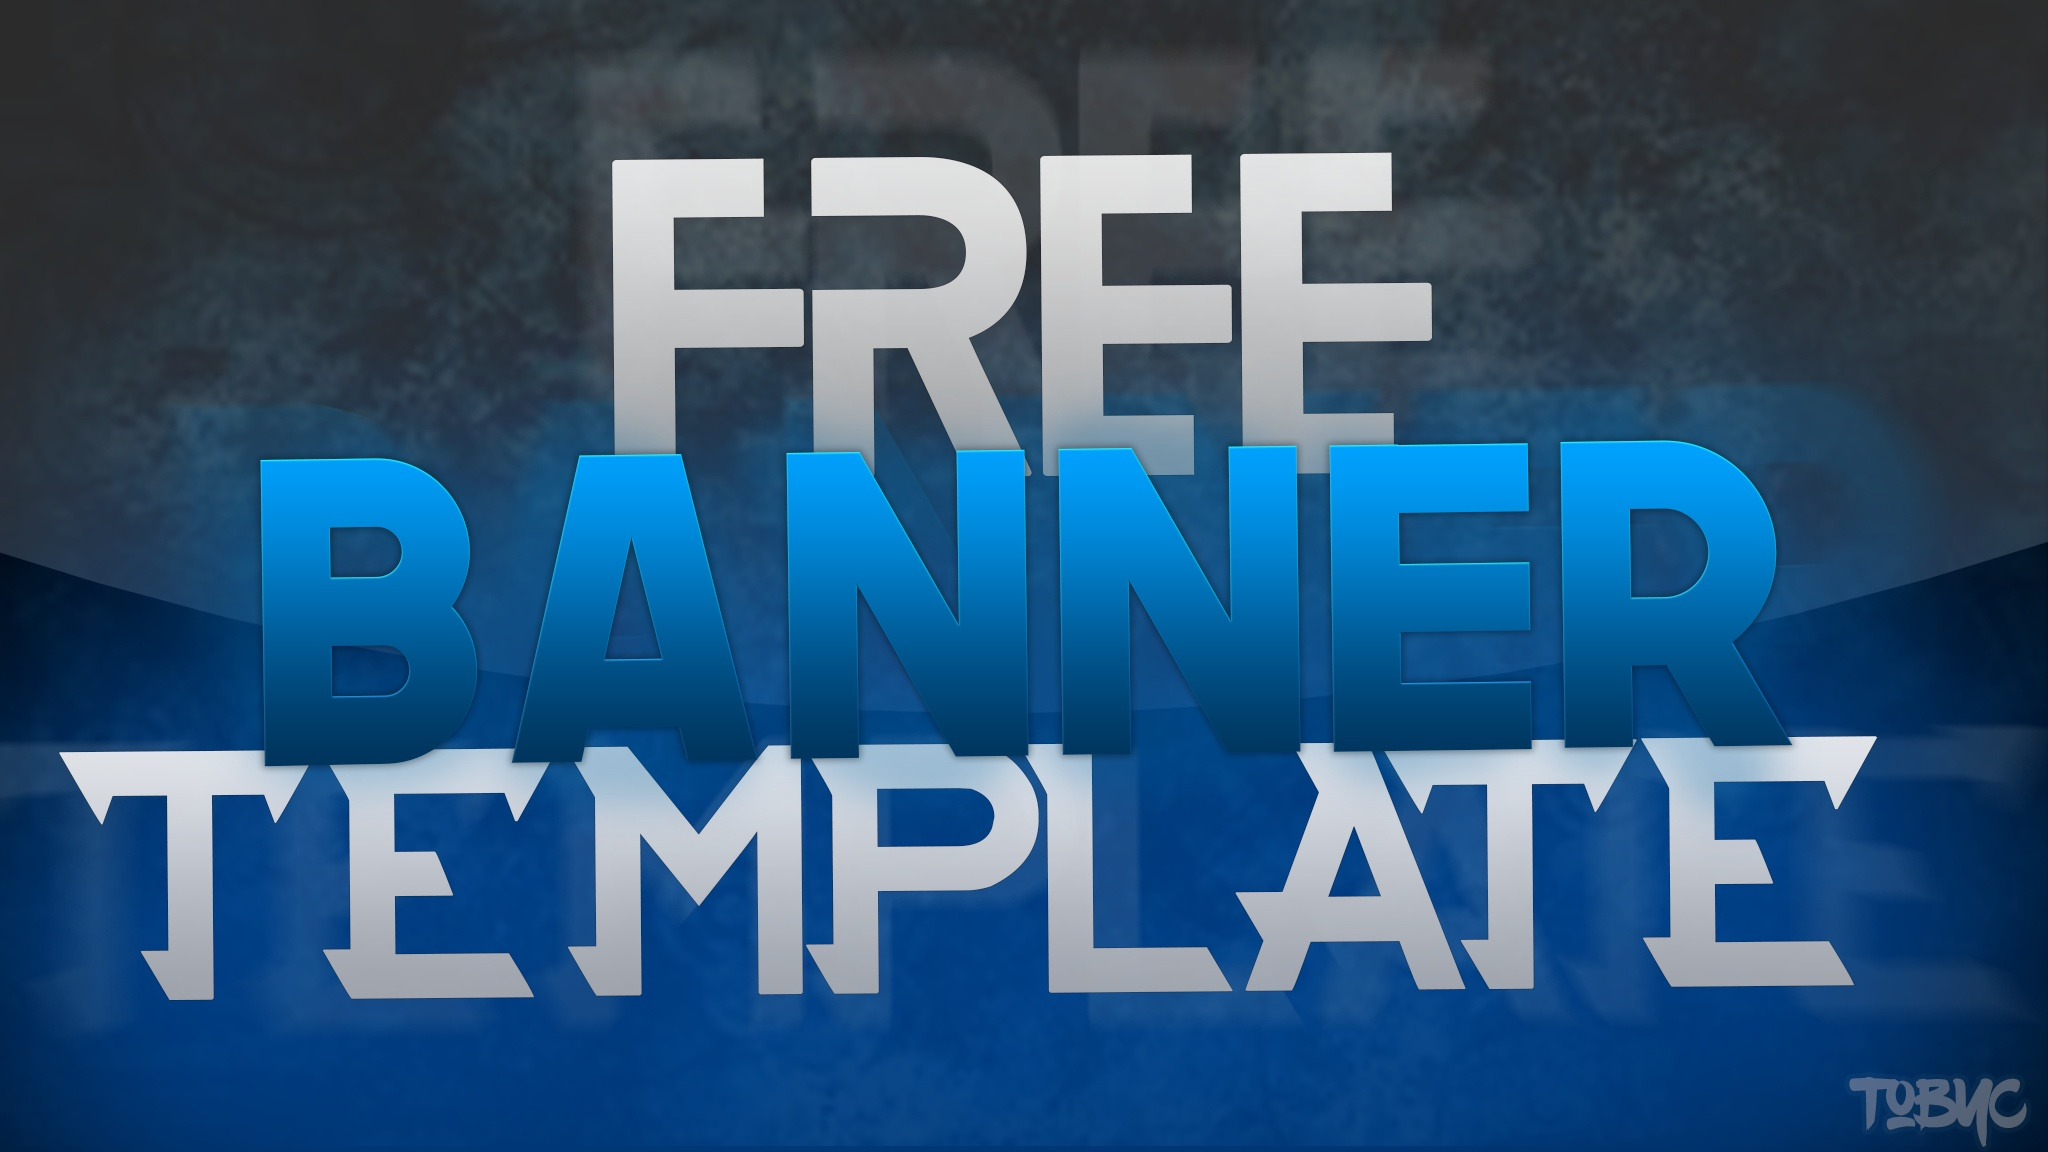 Free Banner Template 2048x1152 Tobyc Graphics